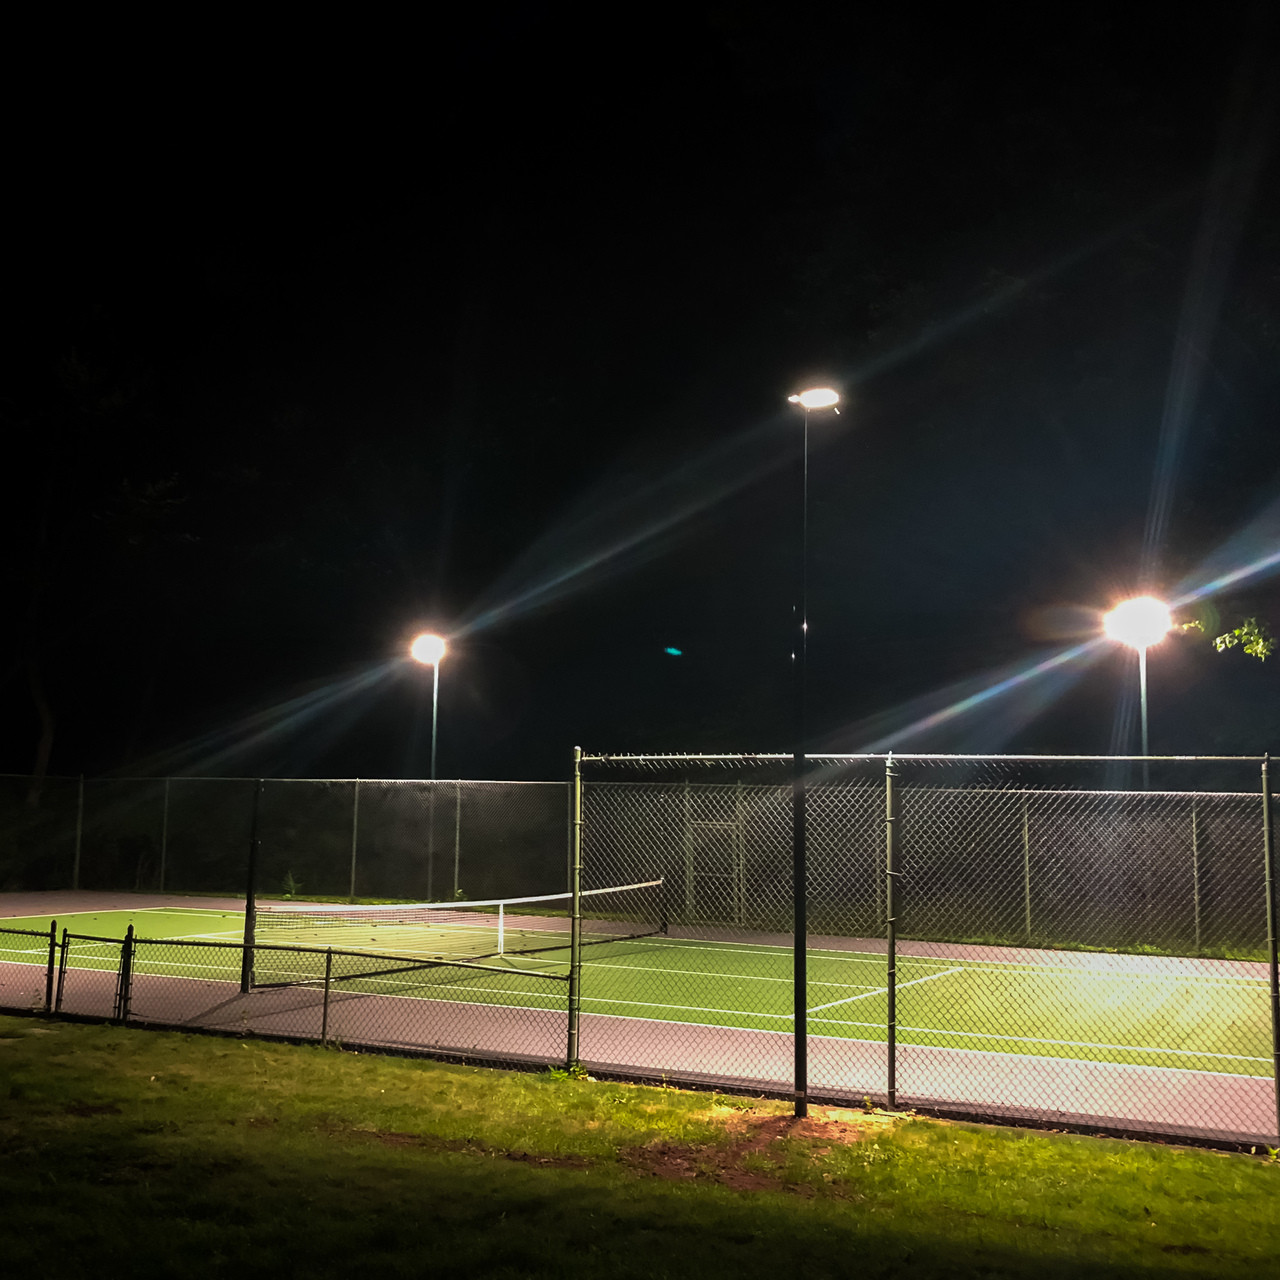 20 direct burial aluminum light poles with 240w 4000k shoebox light fixtures for a tennis